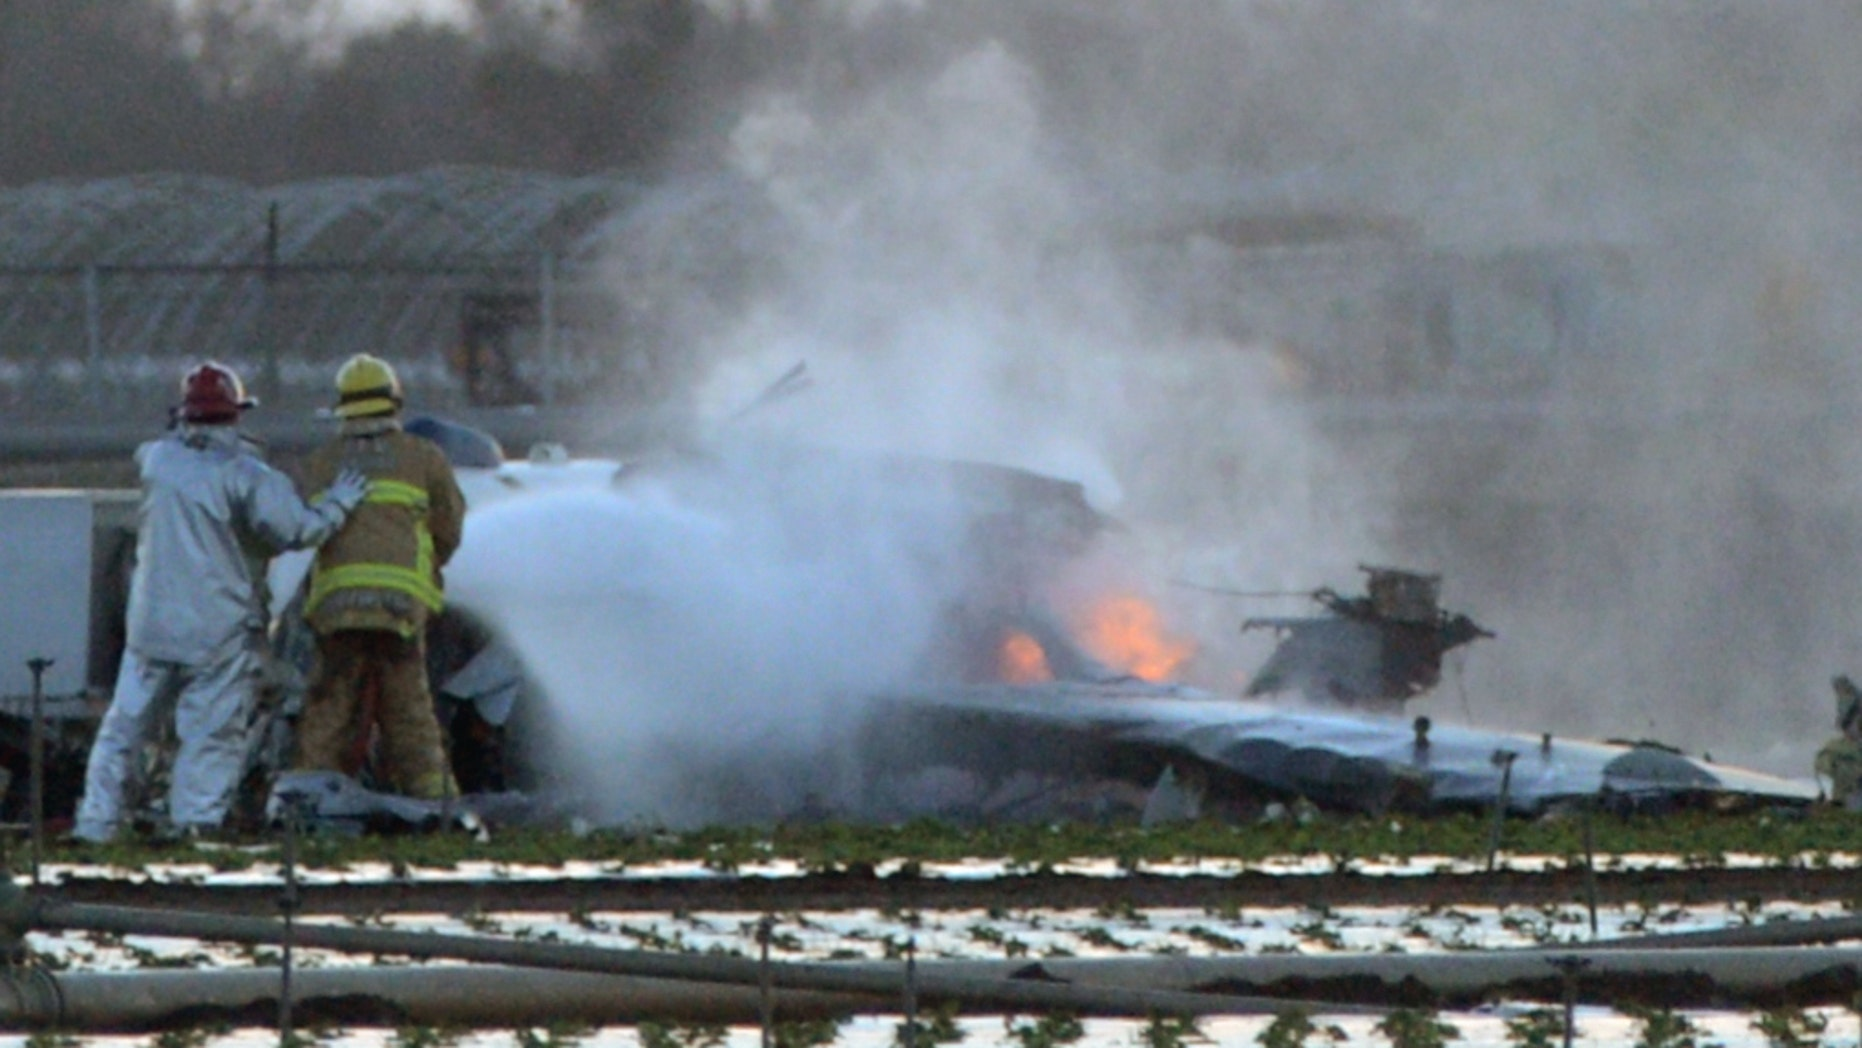 Oct. 29, 2014: Firefighters extinguish the remaining flames of a military airplane that crashed in a field near Naval Station Ventura County near Port Hueneme, Calif., killing the pilot